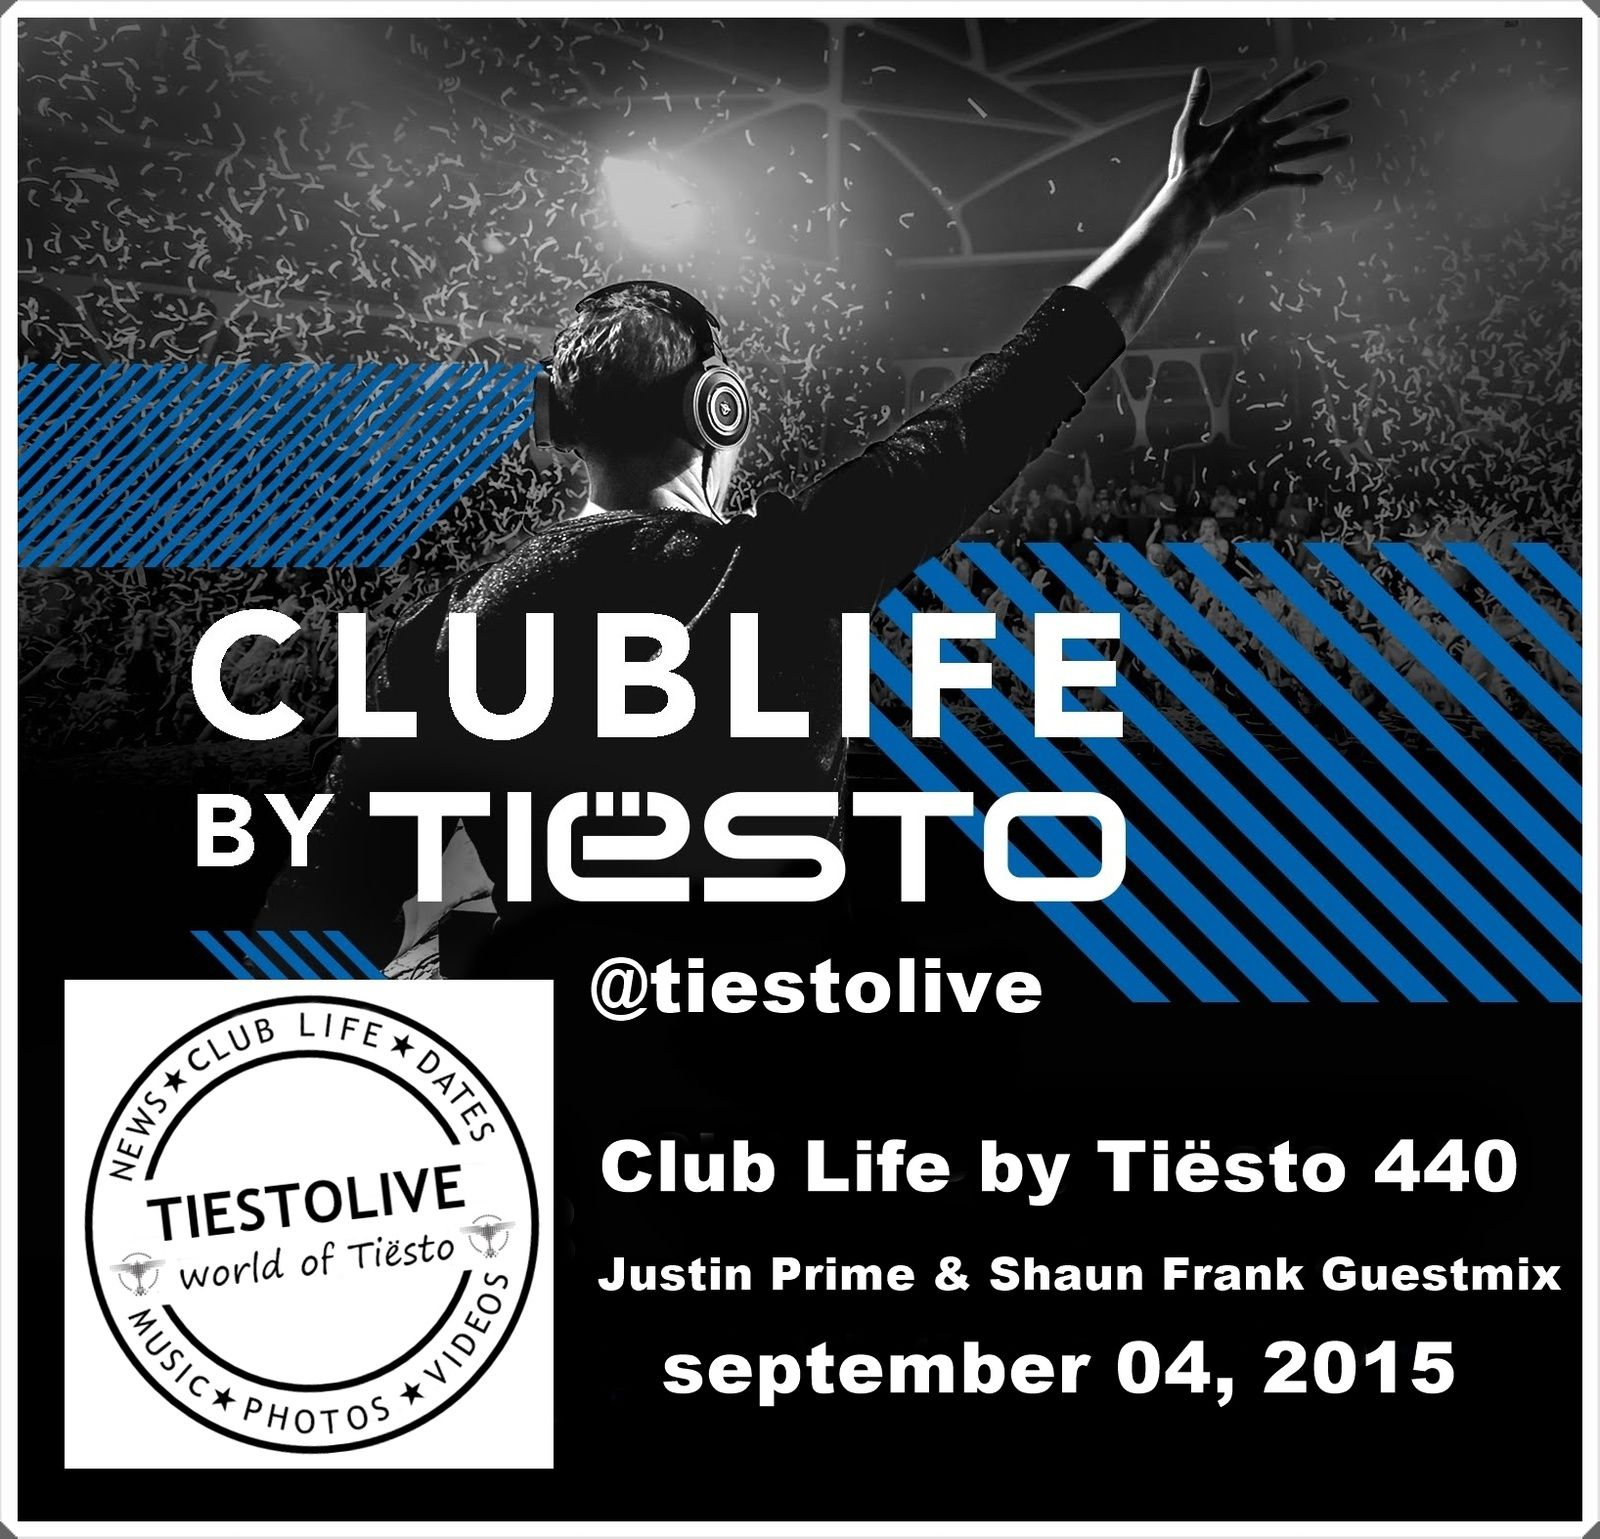 Club Life by Tiësto 440 - Justin Prime &amp&#x3B; Shaun Frank Guestmix - september 04, 2015